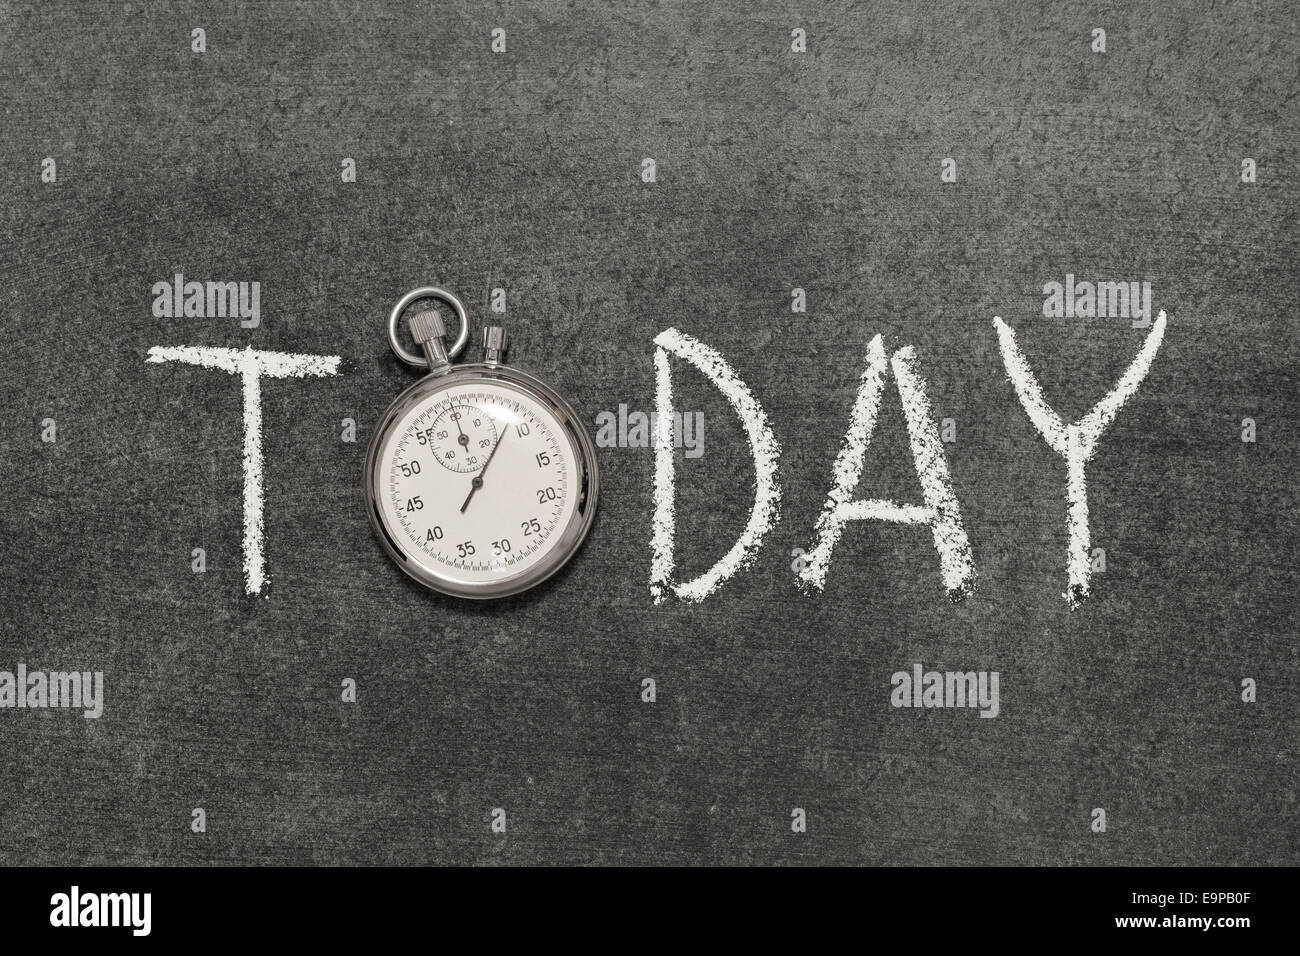 today word handwritten on chalkboard with vintage precise stopwatch used instead of O - Stock Image